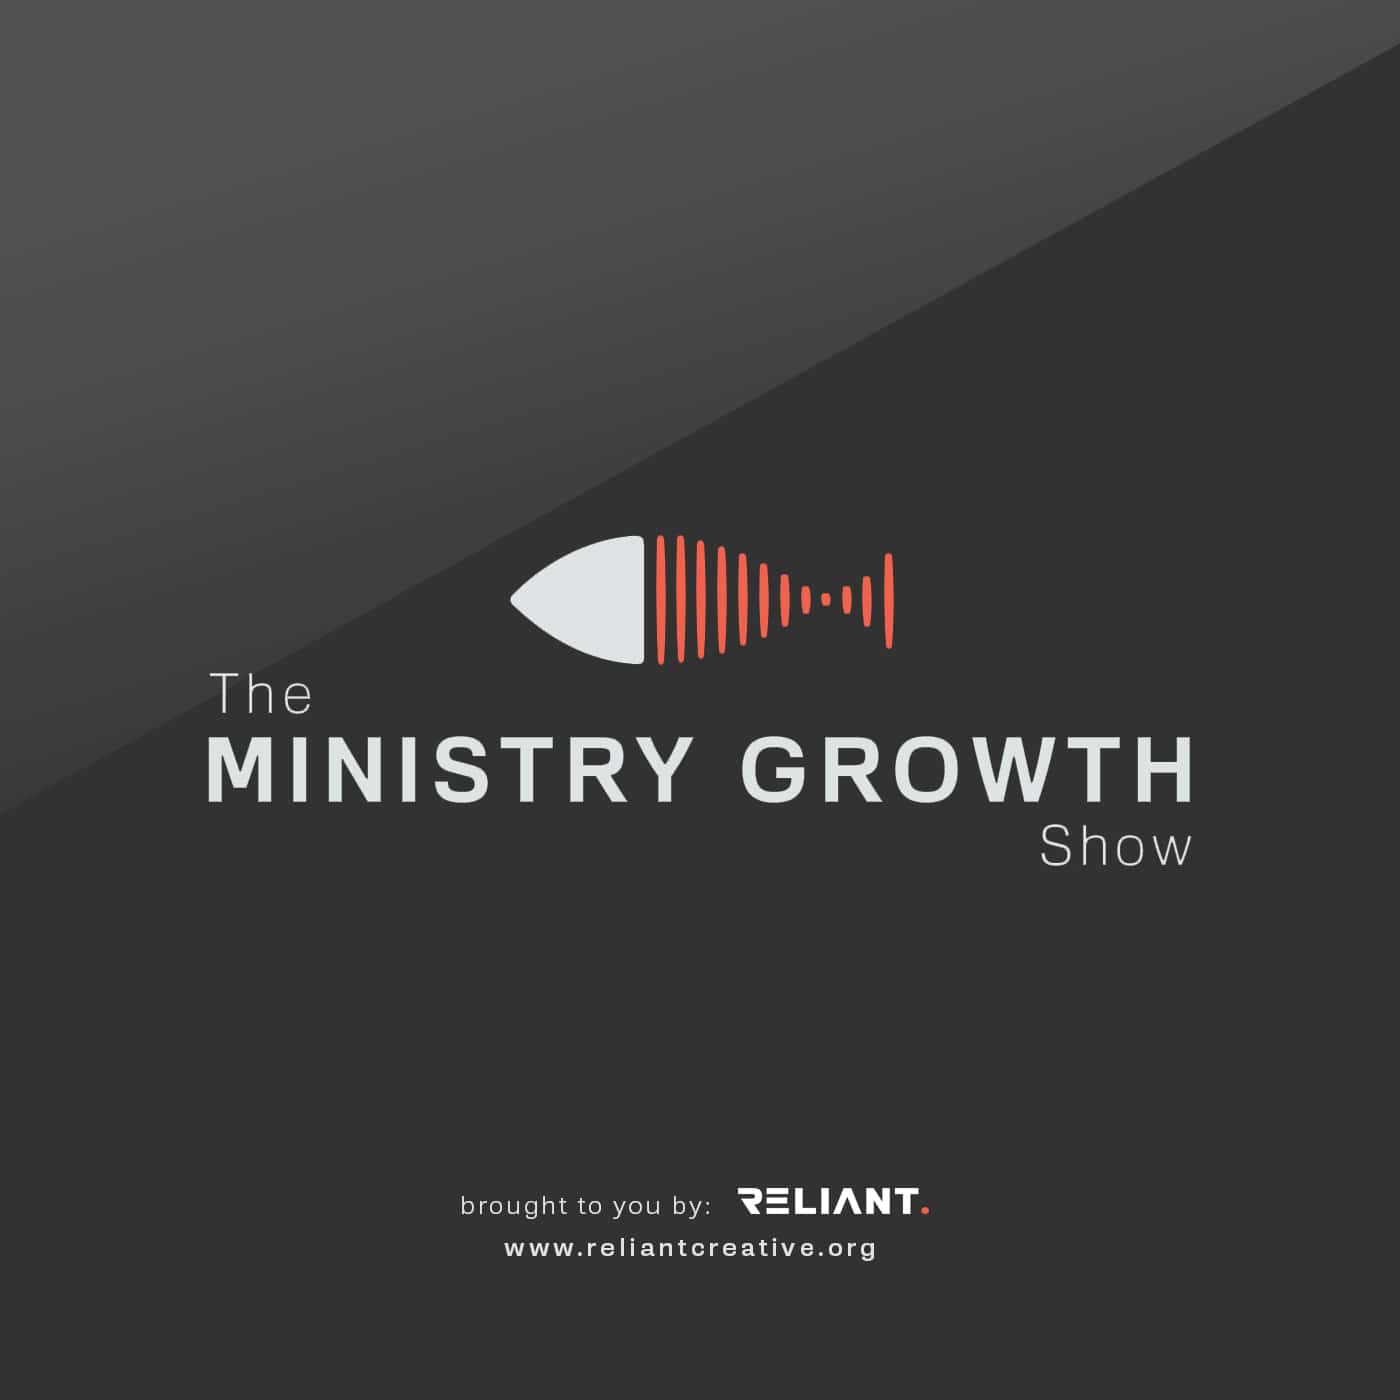 The Ministry Growth Show